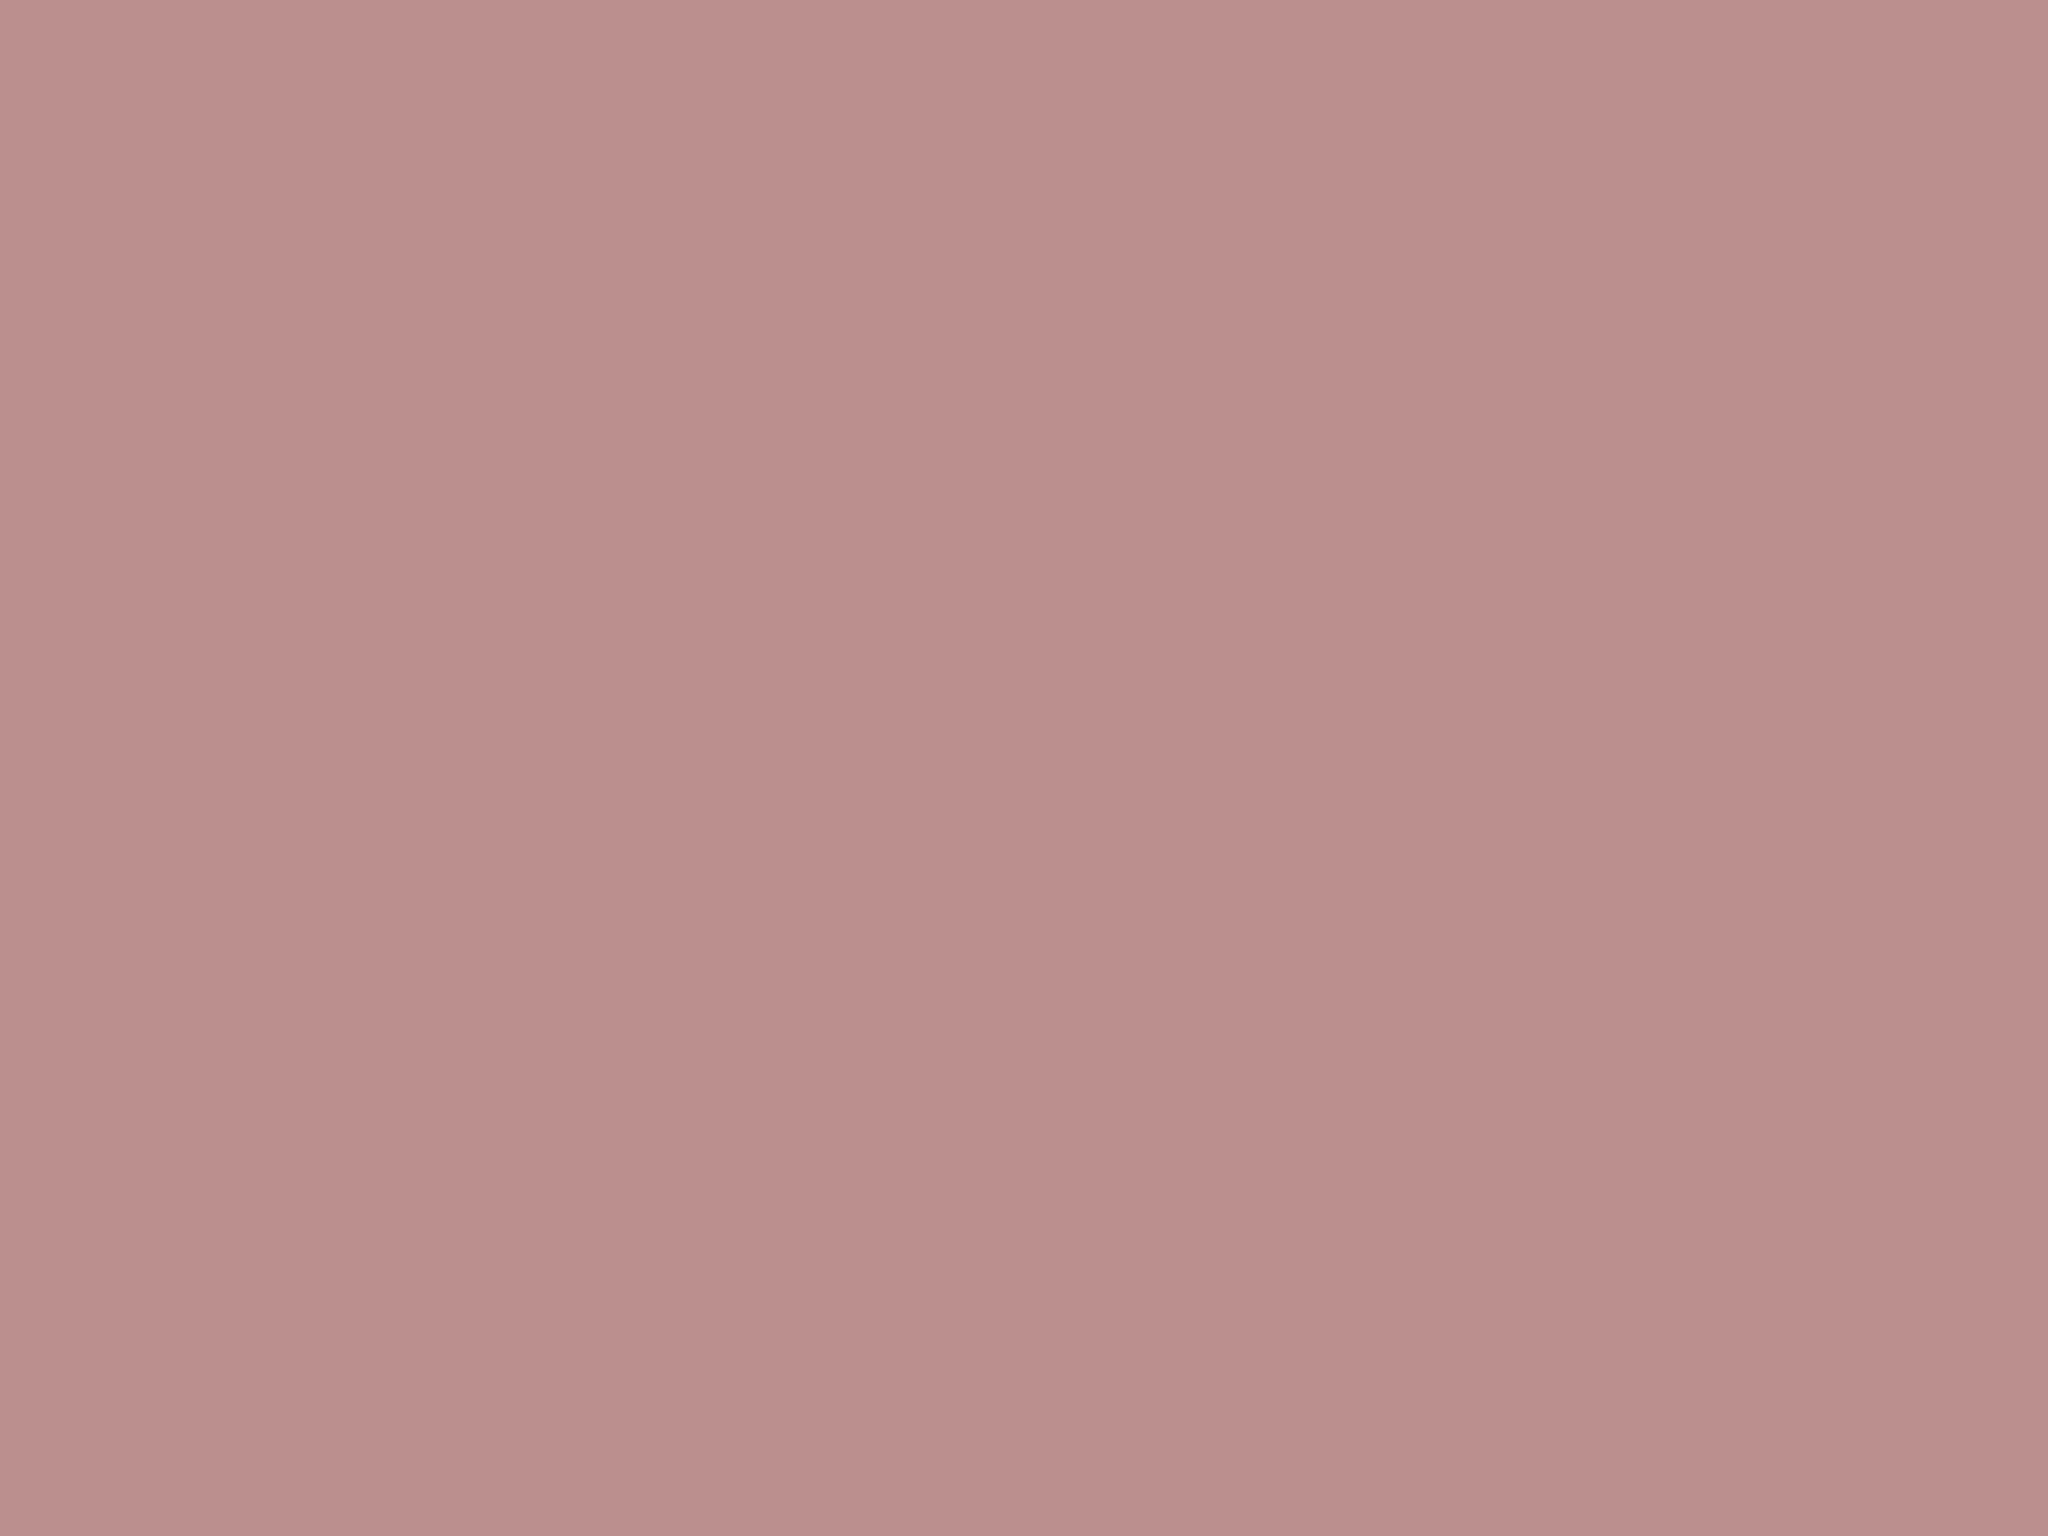 2048x1536 Rosy Brown Solid Color Background